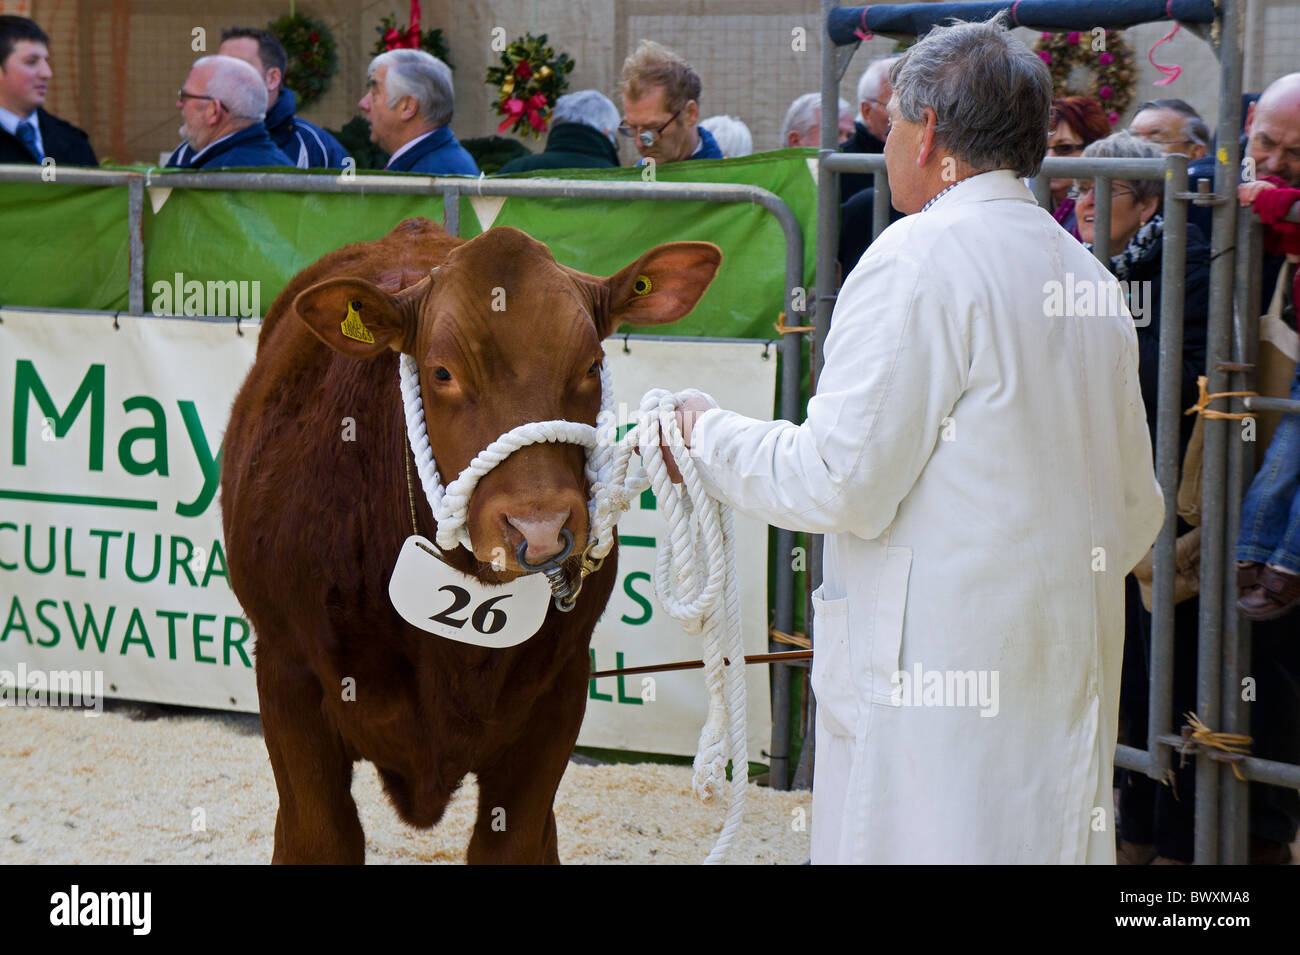 a cow in the show ring at a country fair in cornwall, uk - Stock Image